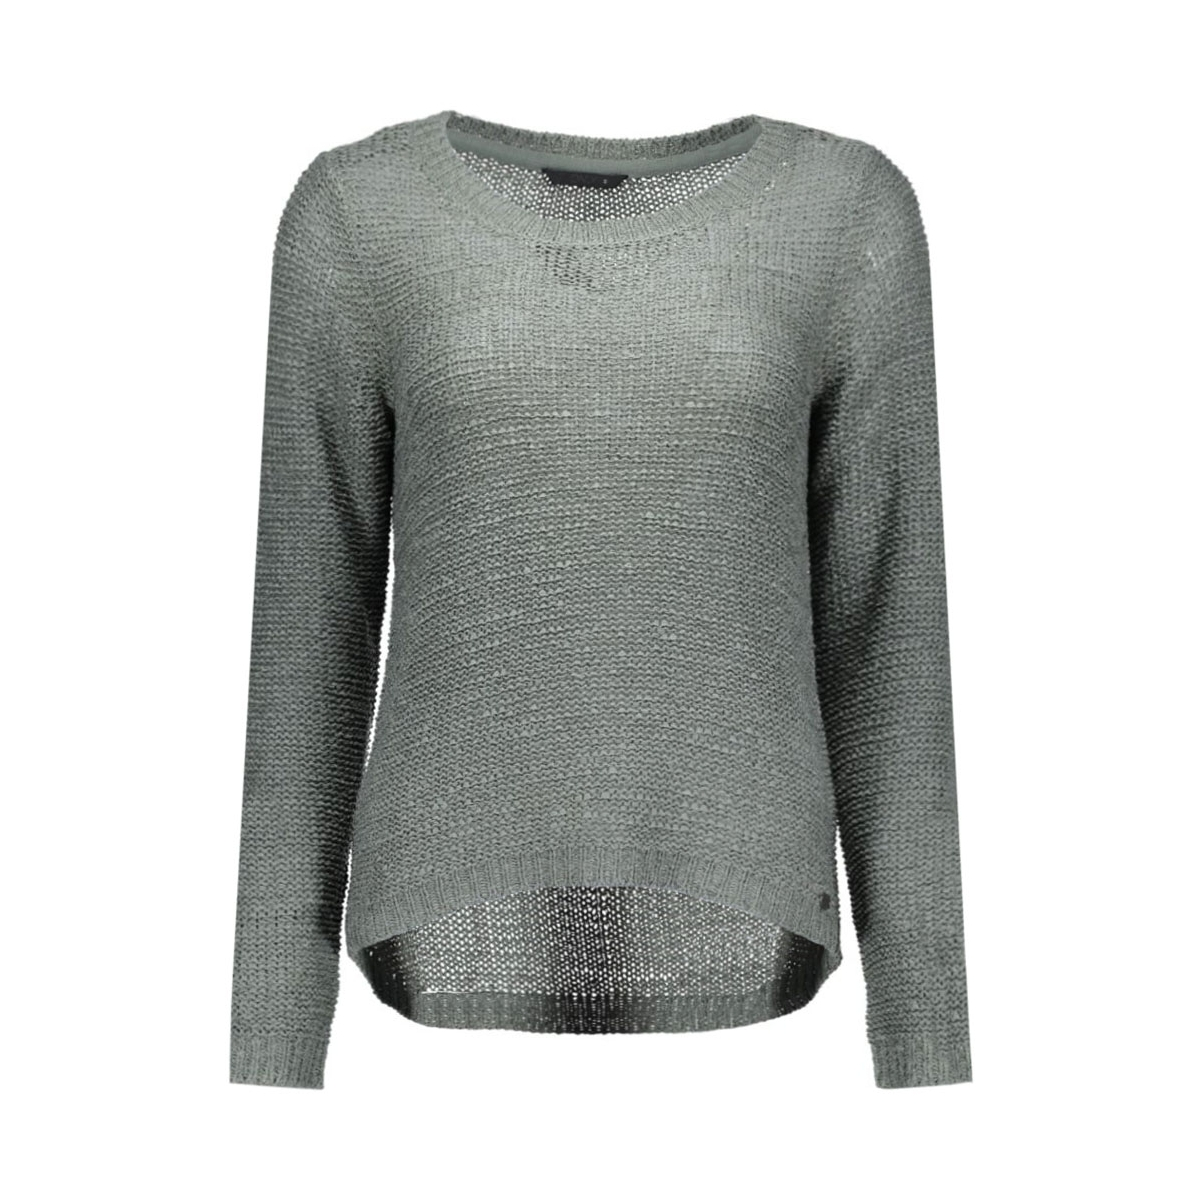 onlgeena xo l/s pullover knt noos 15113356 only trui stormy weather